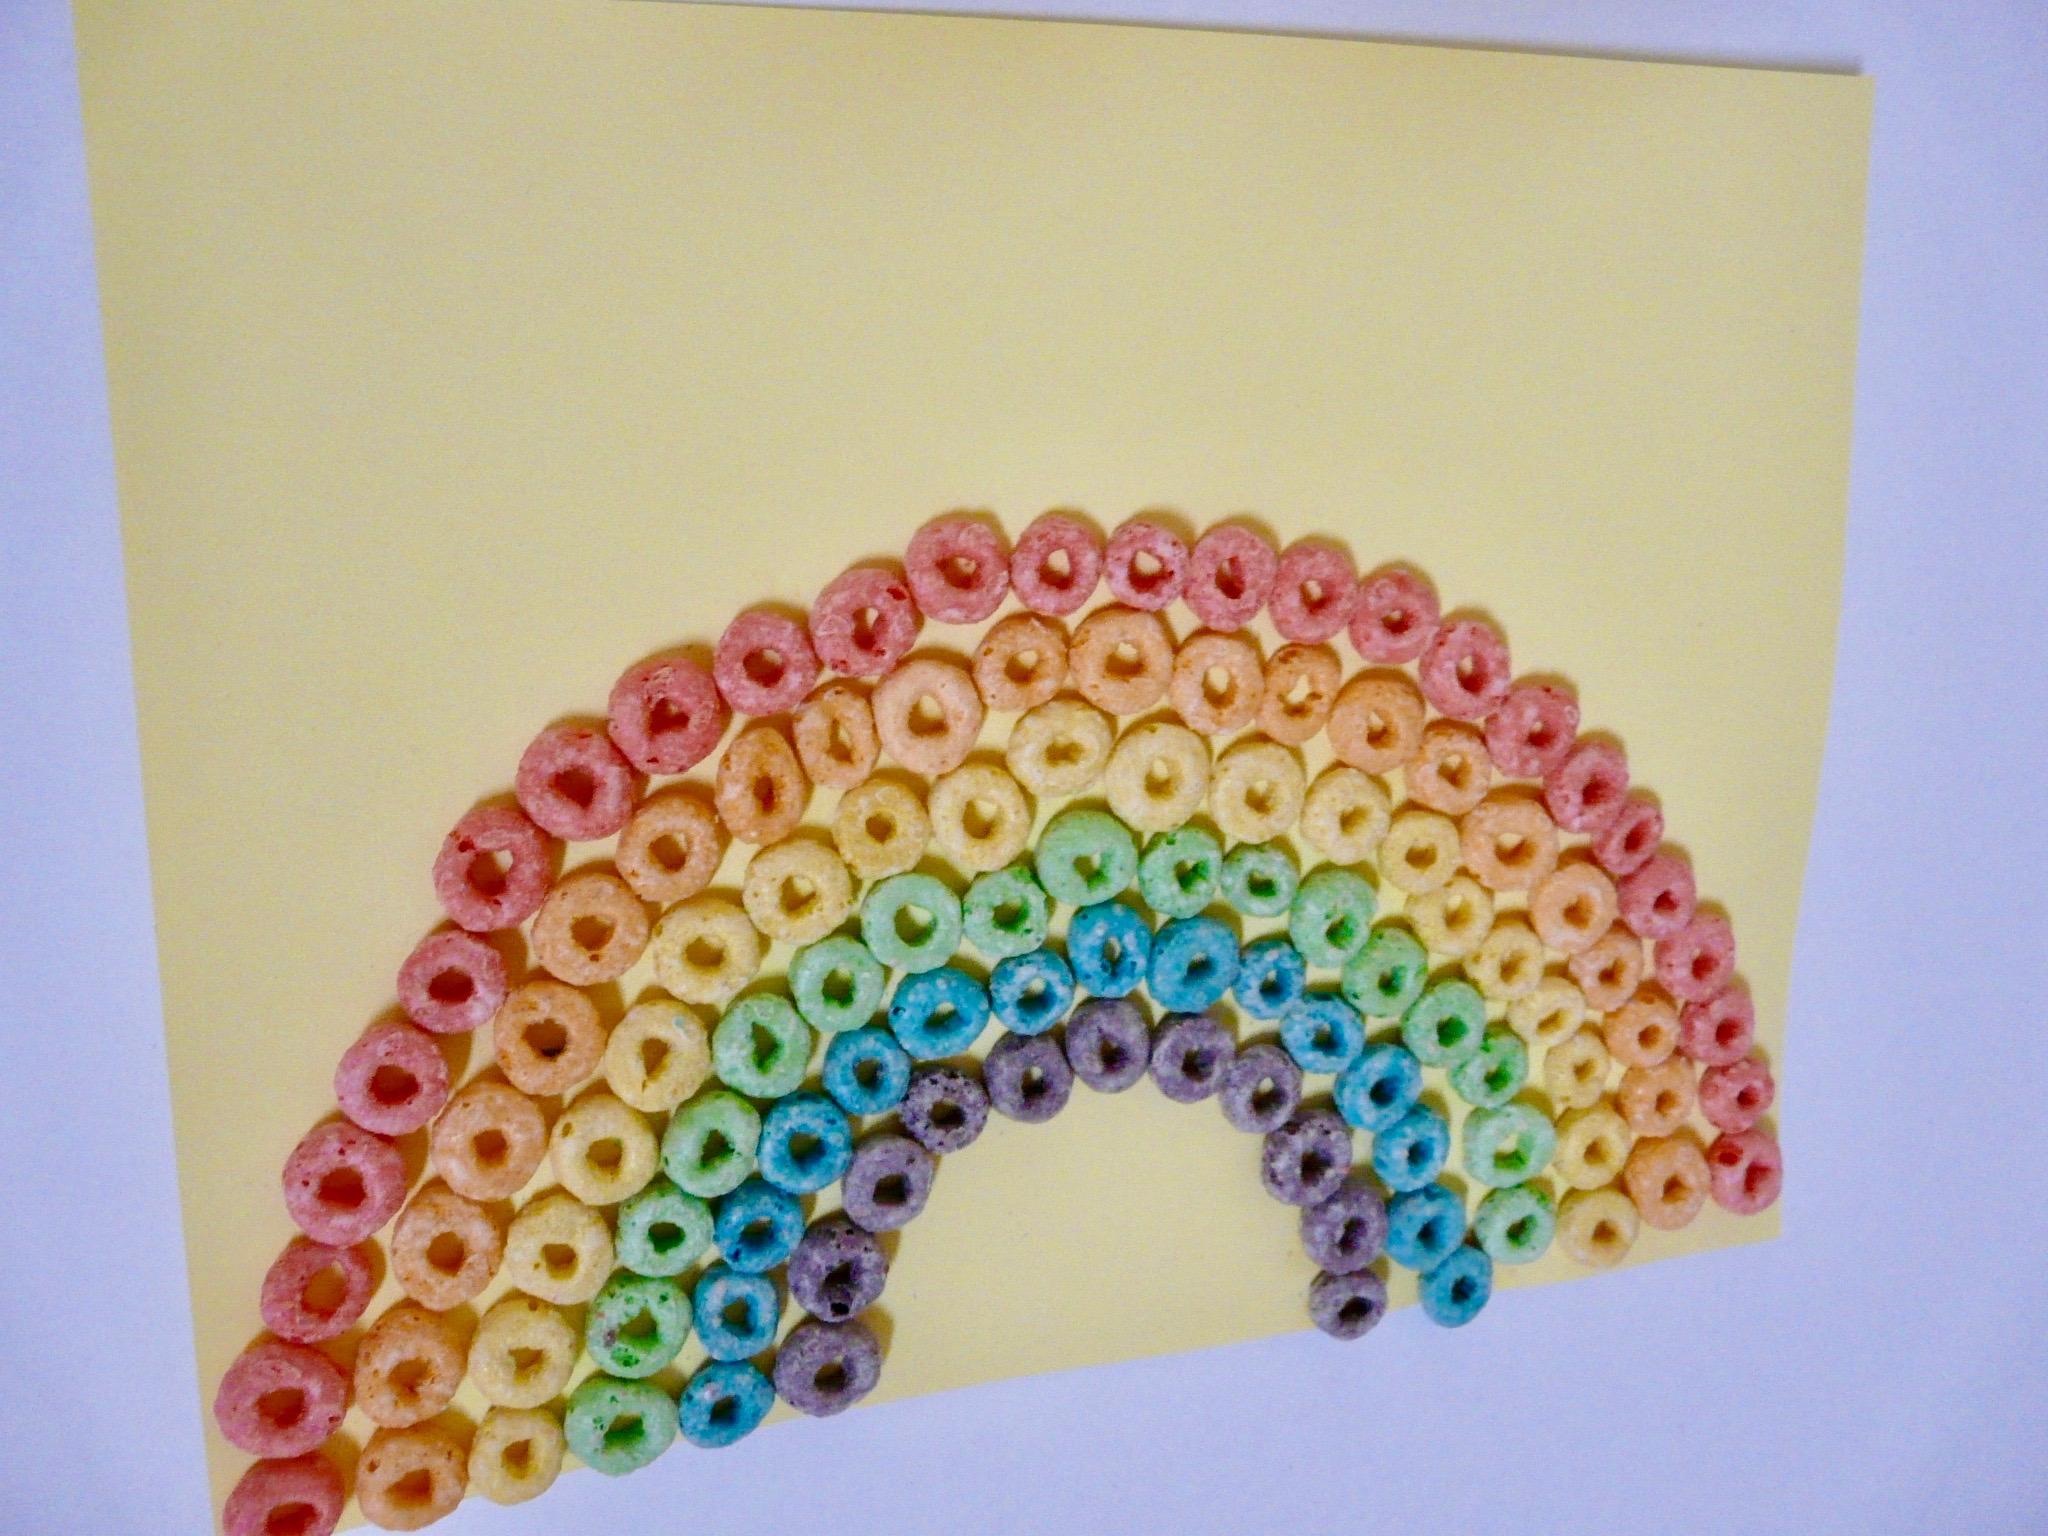 Rainbow 3 by Haydee Montemayor from Love and Treasure www.loveandtreasure.com